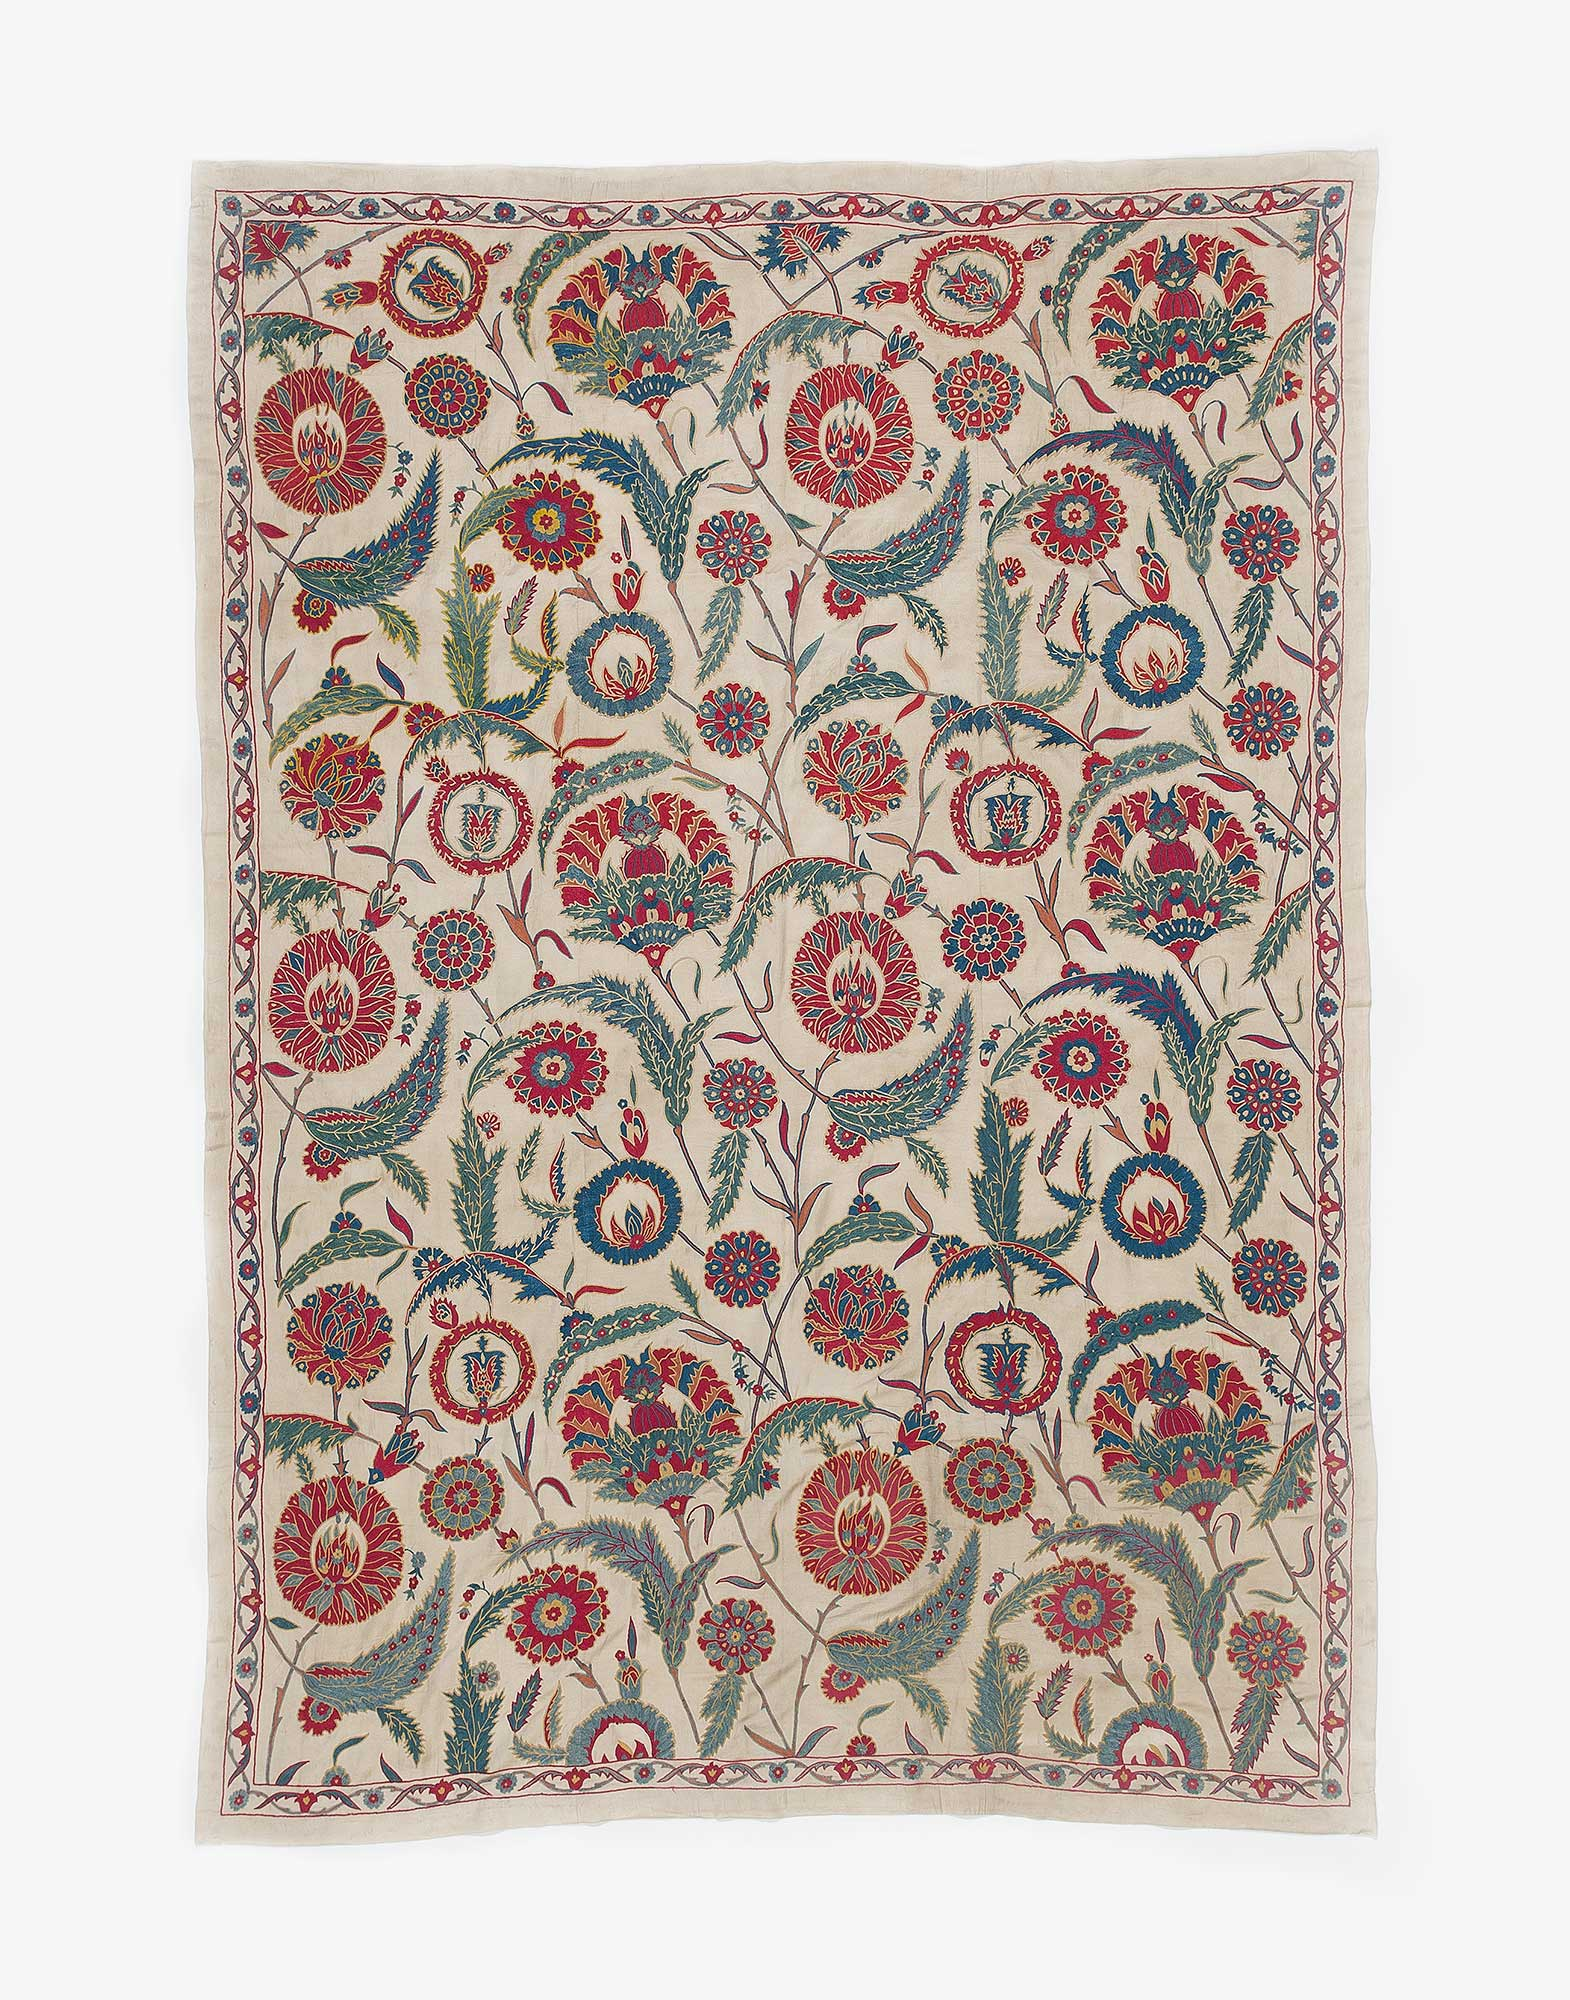 Uzbek Suzani Embroidered Silk Wall Hanging